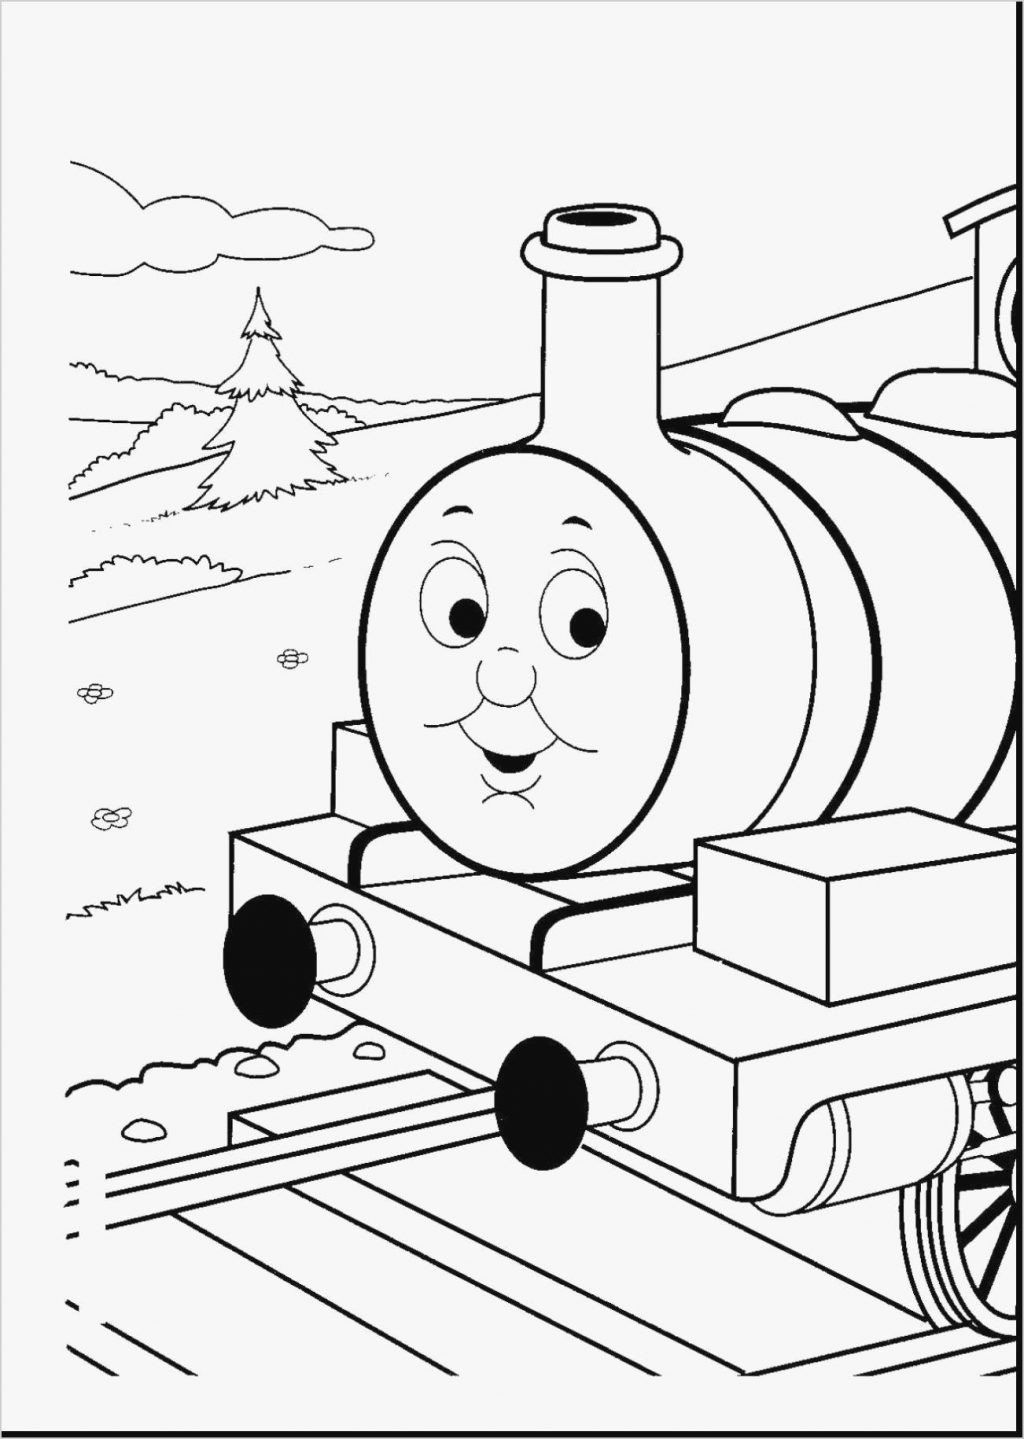 Thomas And Friends Coloring Pages New Coloring Books Coloring Pageshomasherain Printable Gordo In 2020 Train Coloring Pages Monster Truck Coloring Pages Coloring Pages